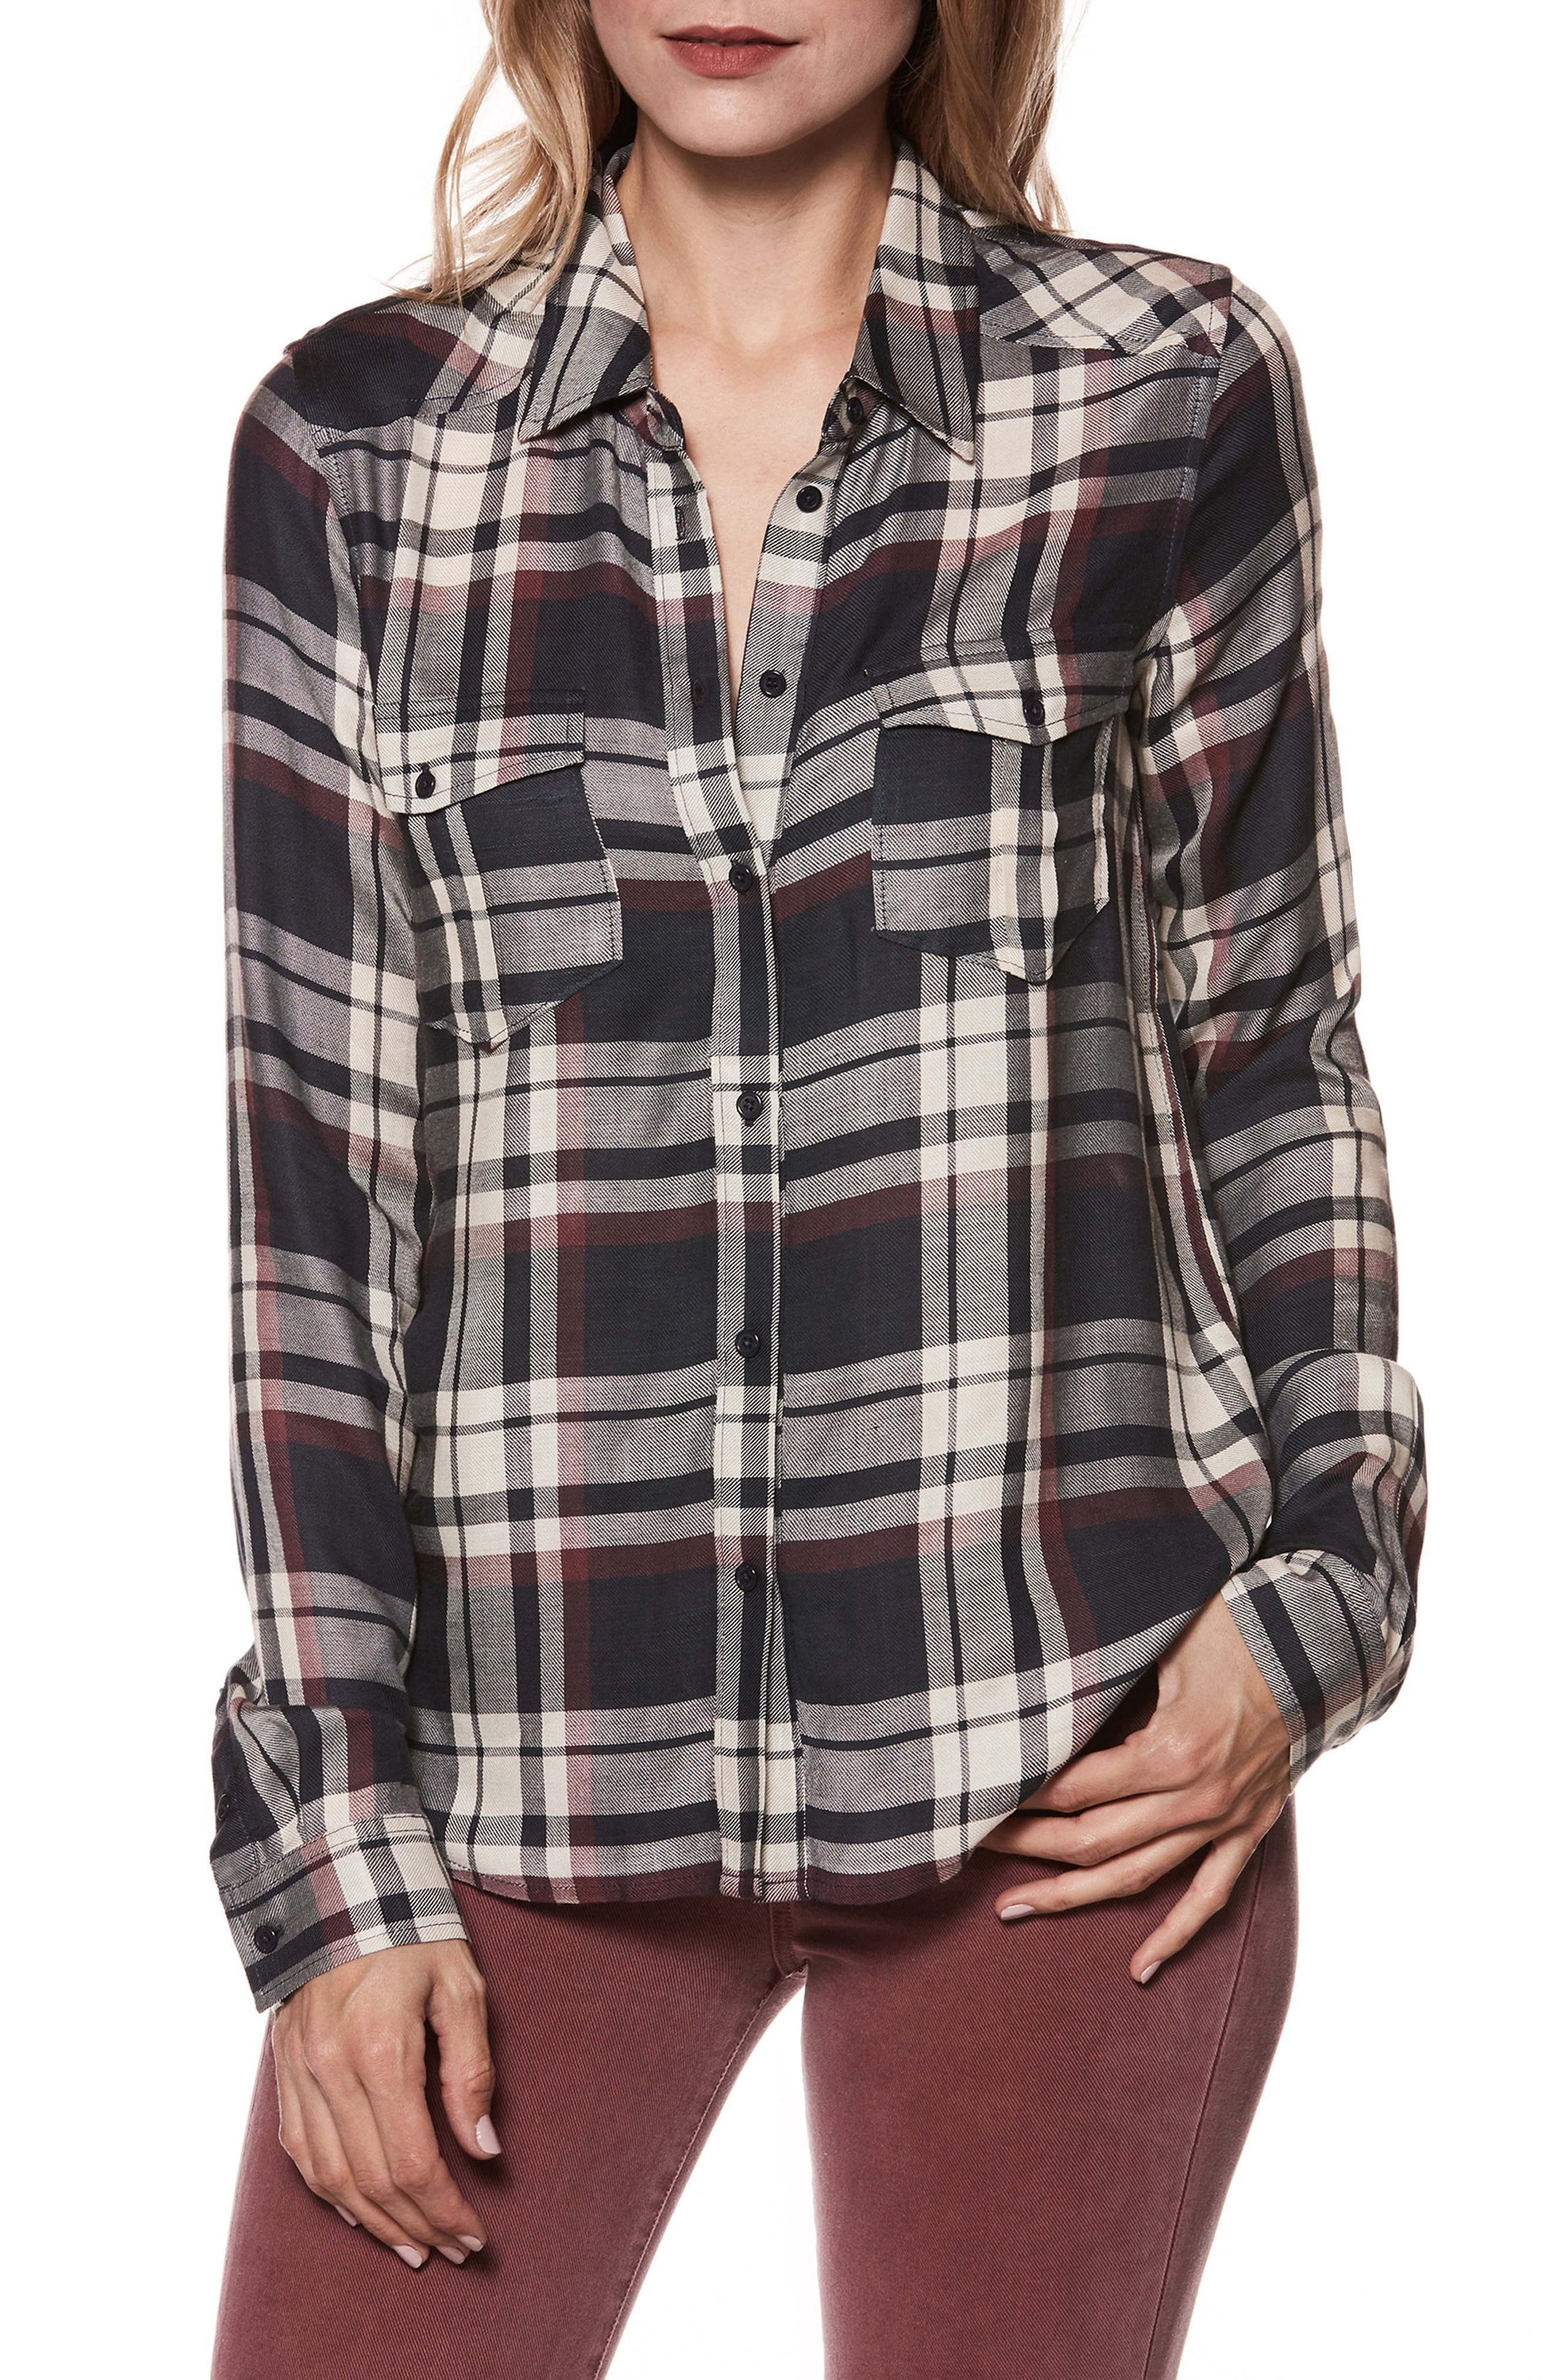 Mya Plaid Shirt,                             Main thumbnail 1, color,                             400